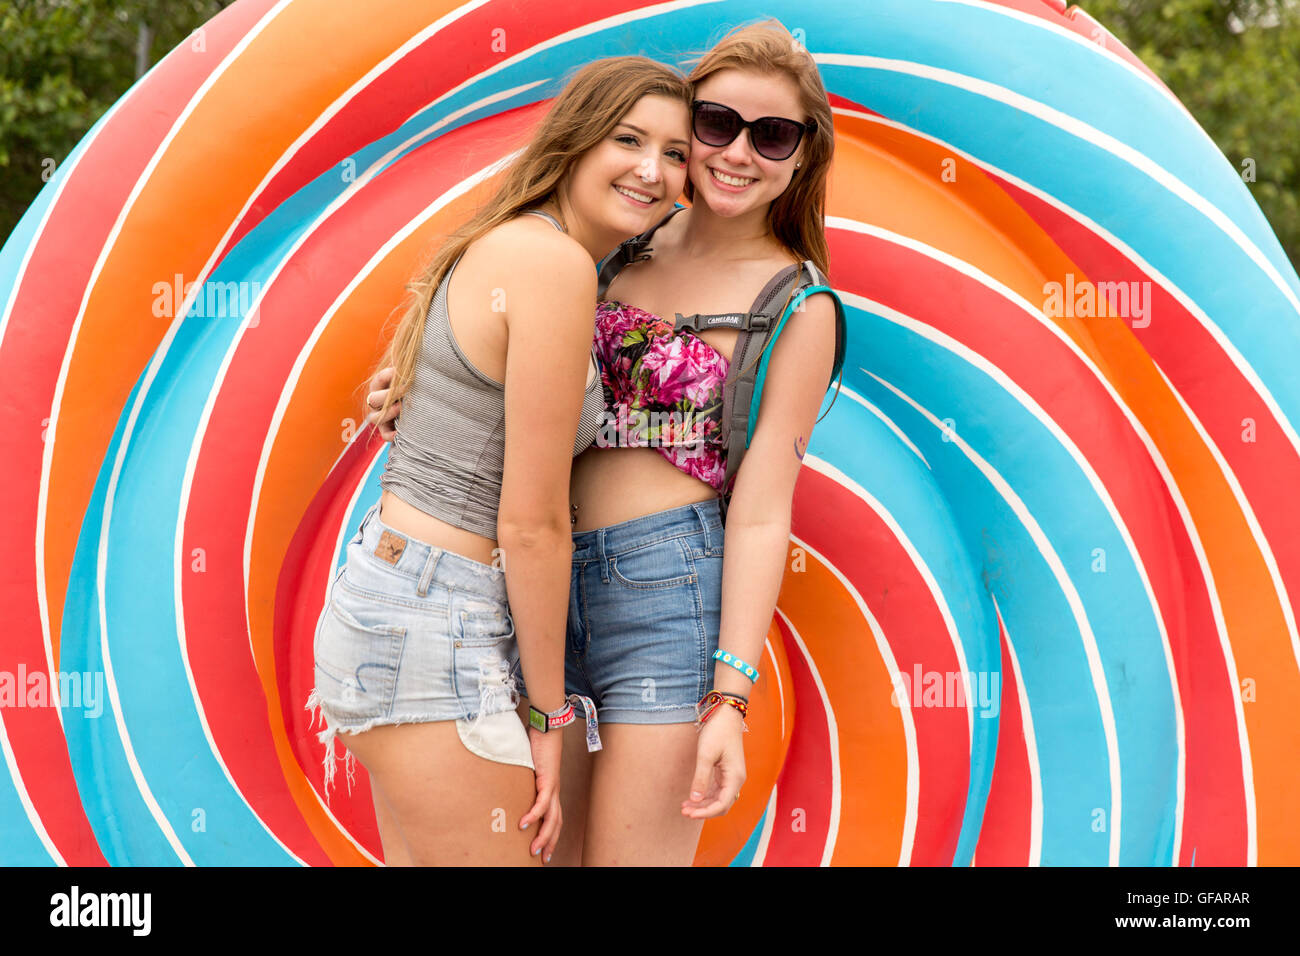 Chicago, Illinois, USA. 29th July, 2016. Female fans pose for a photo at the giant lollipop during Lollapalooza - Stock Image